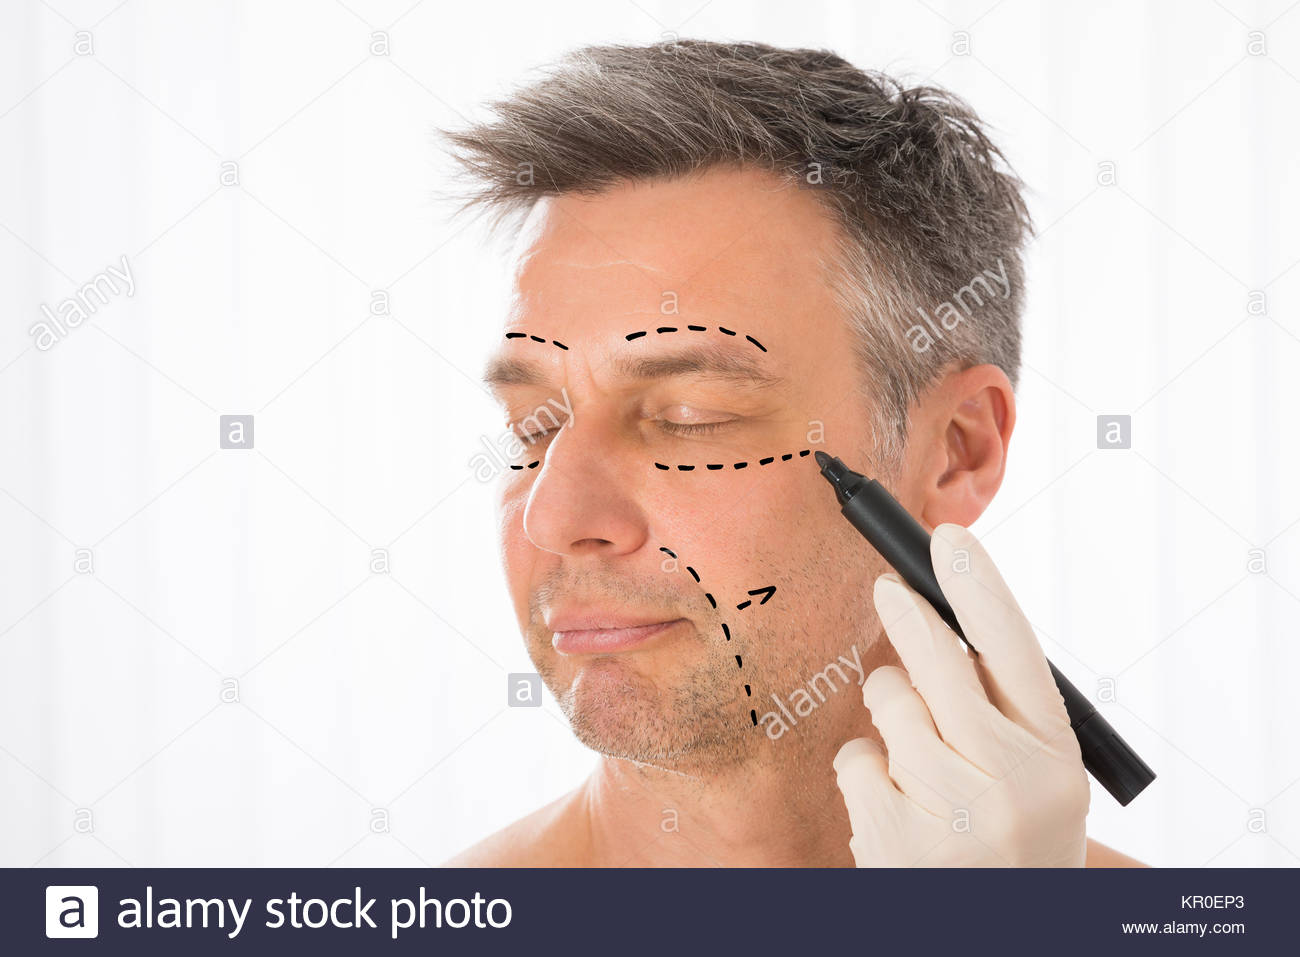 1300x957 Surgeon Drawing Correction Lines On Man Face Stock Photo, Royalty